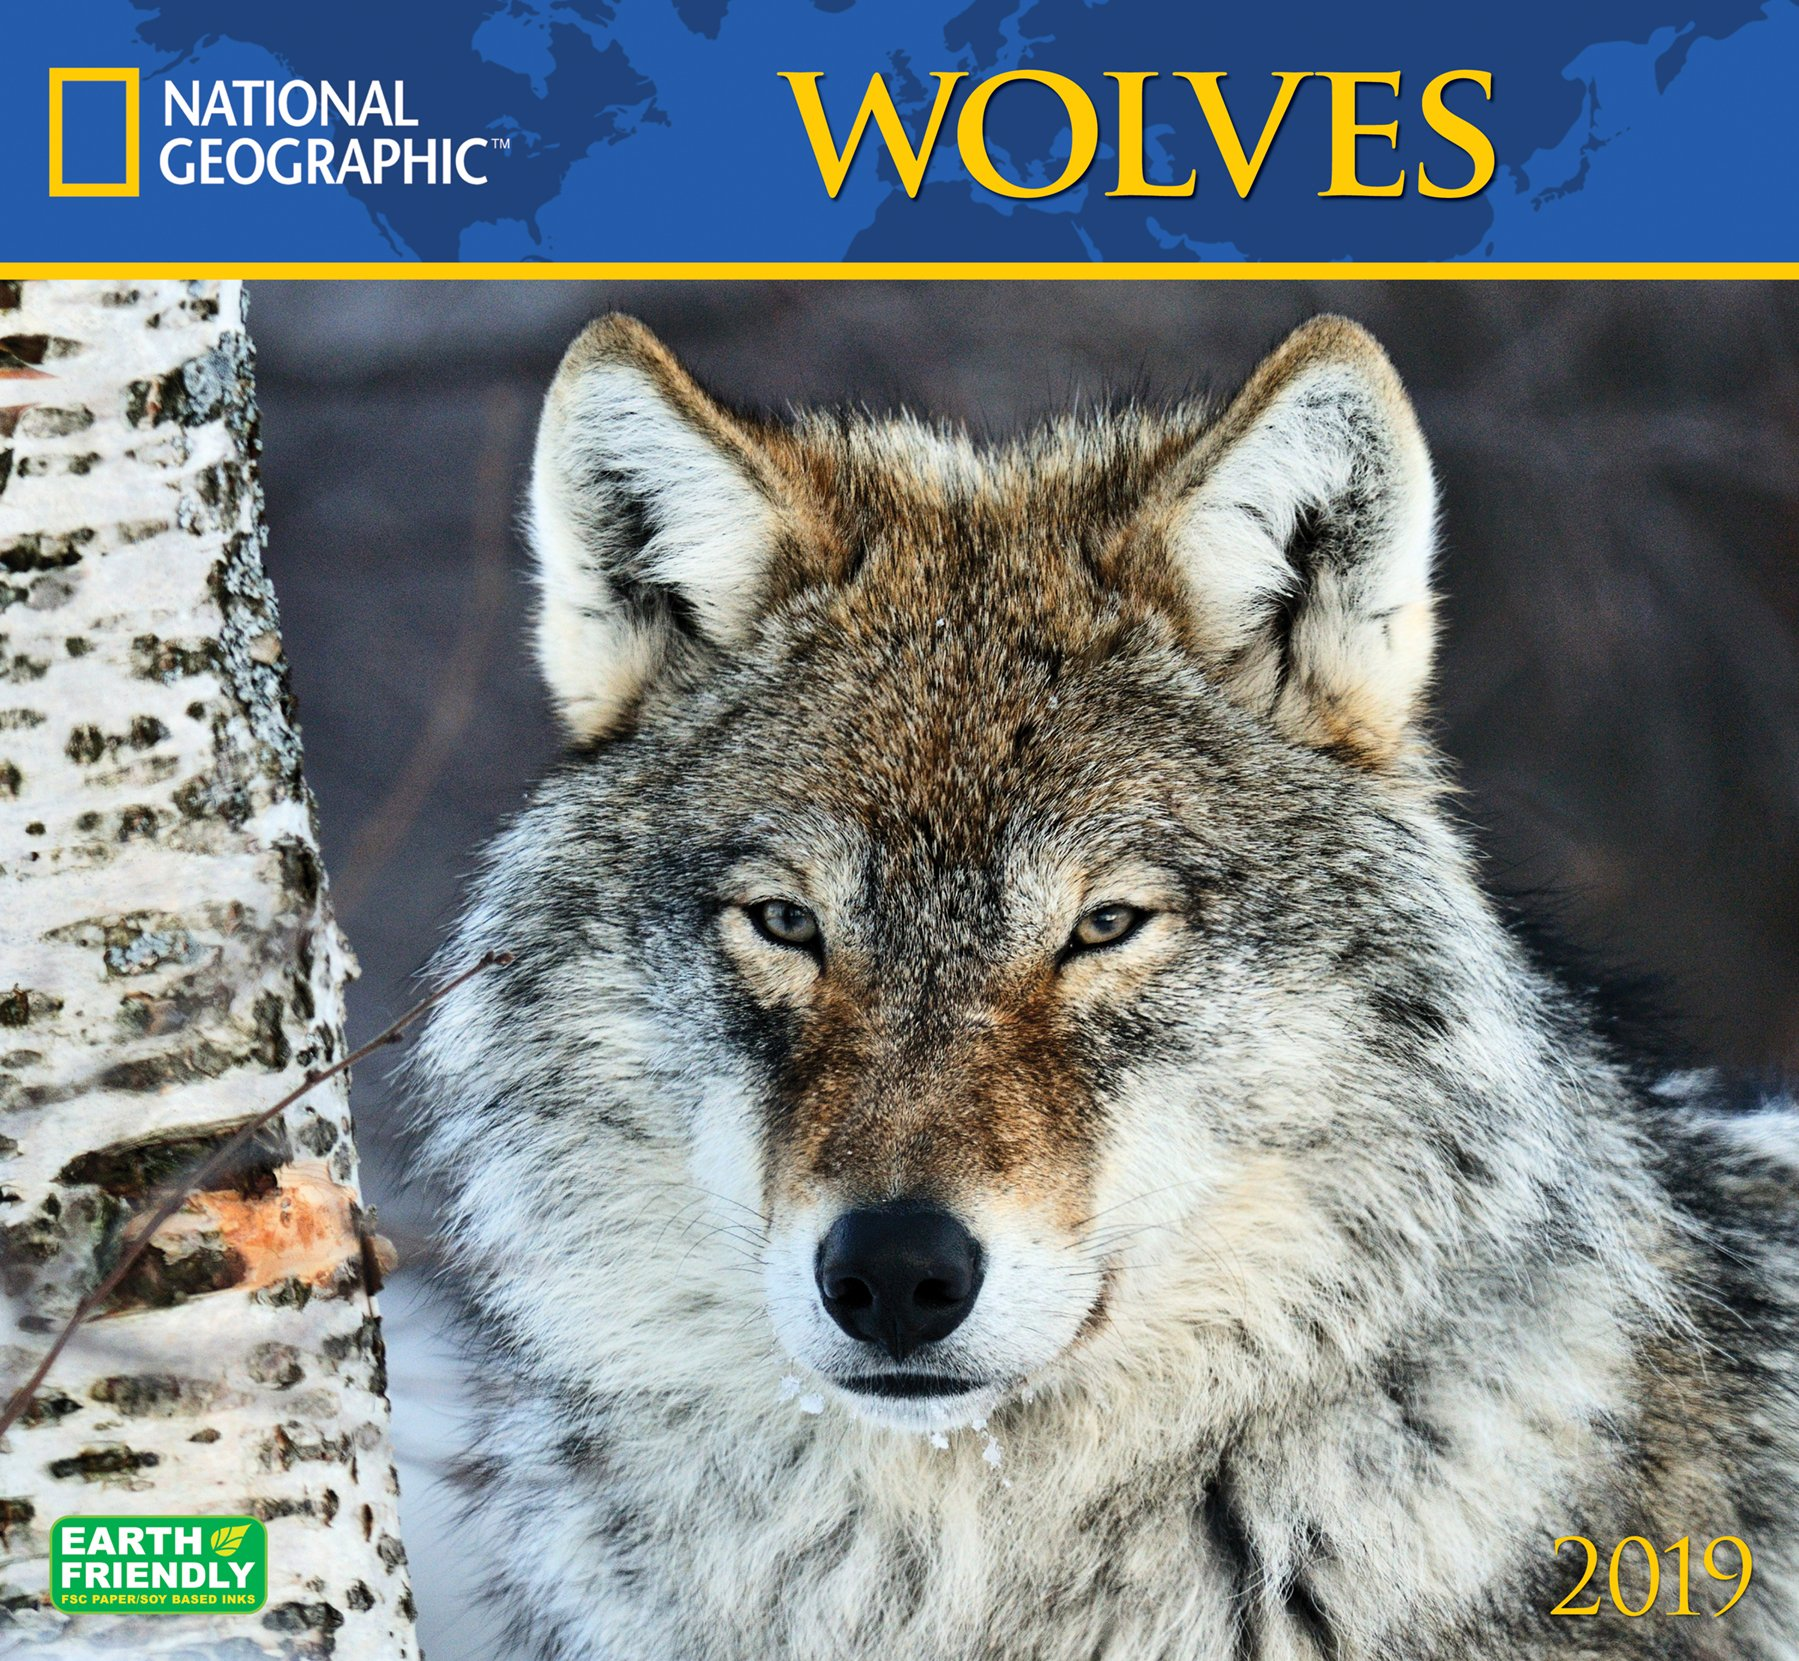 national geographic wolves 2019 wall calendar